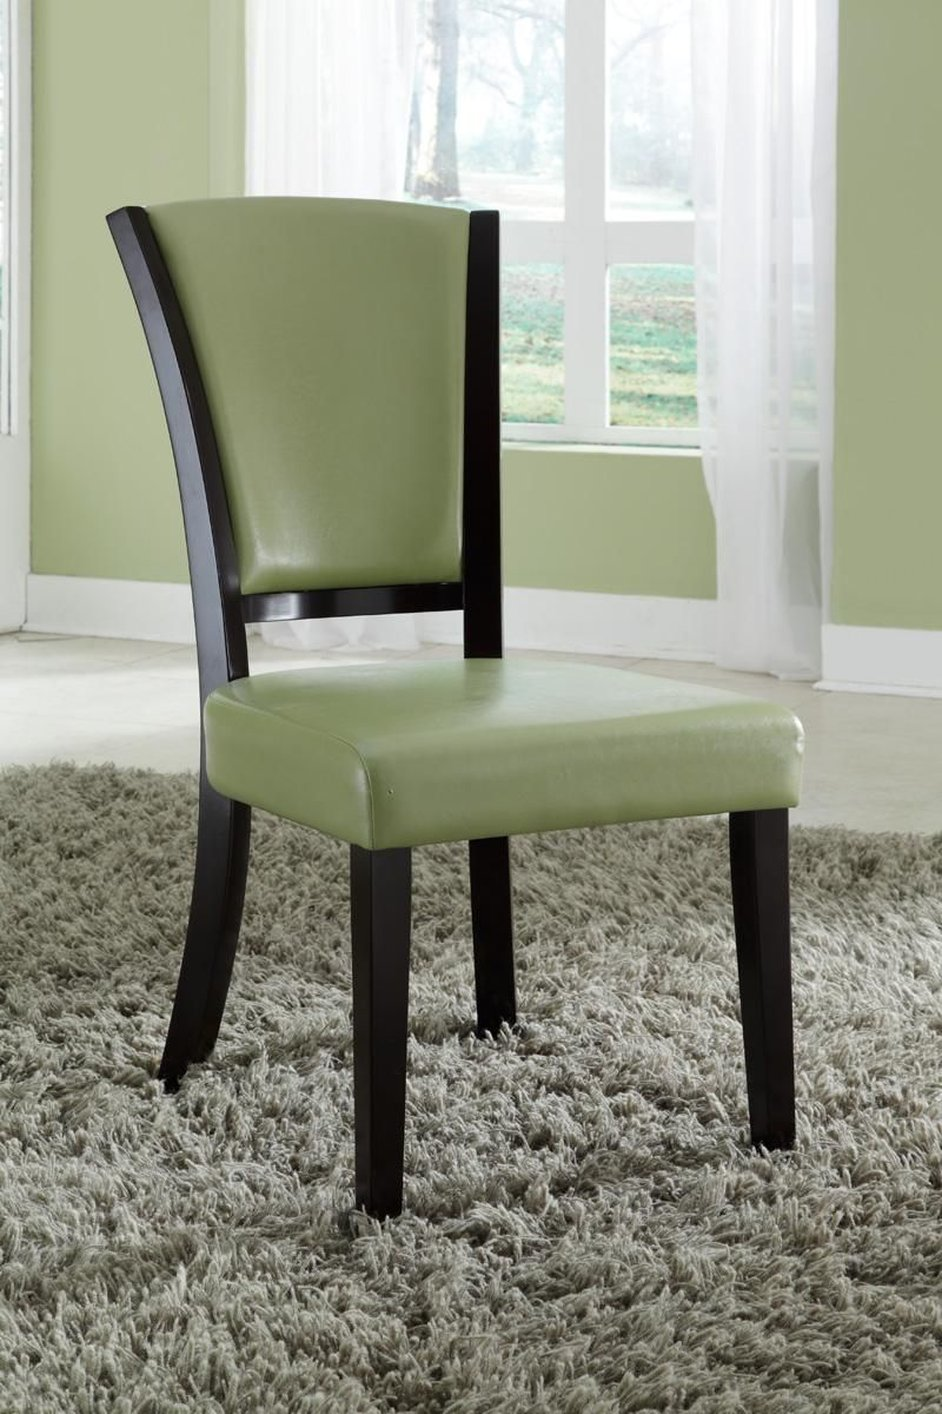 Green Leather Dining Chair Steal A Sofa Furniture Outlet